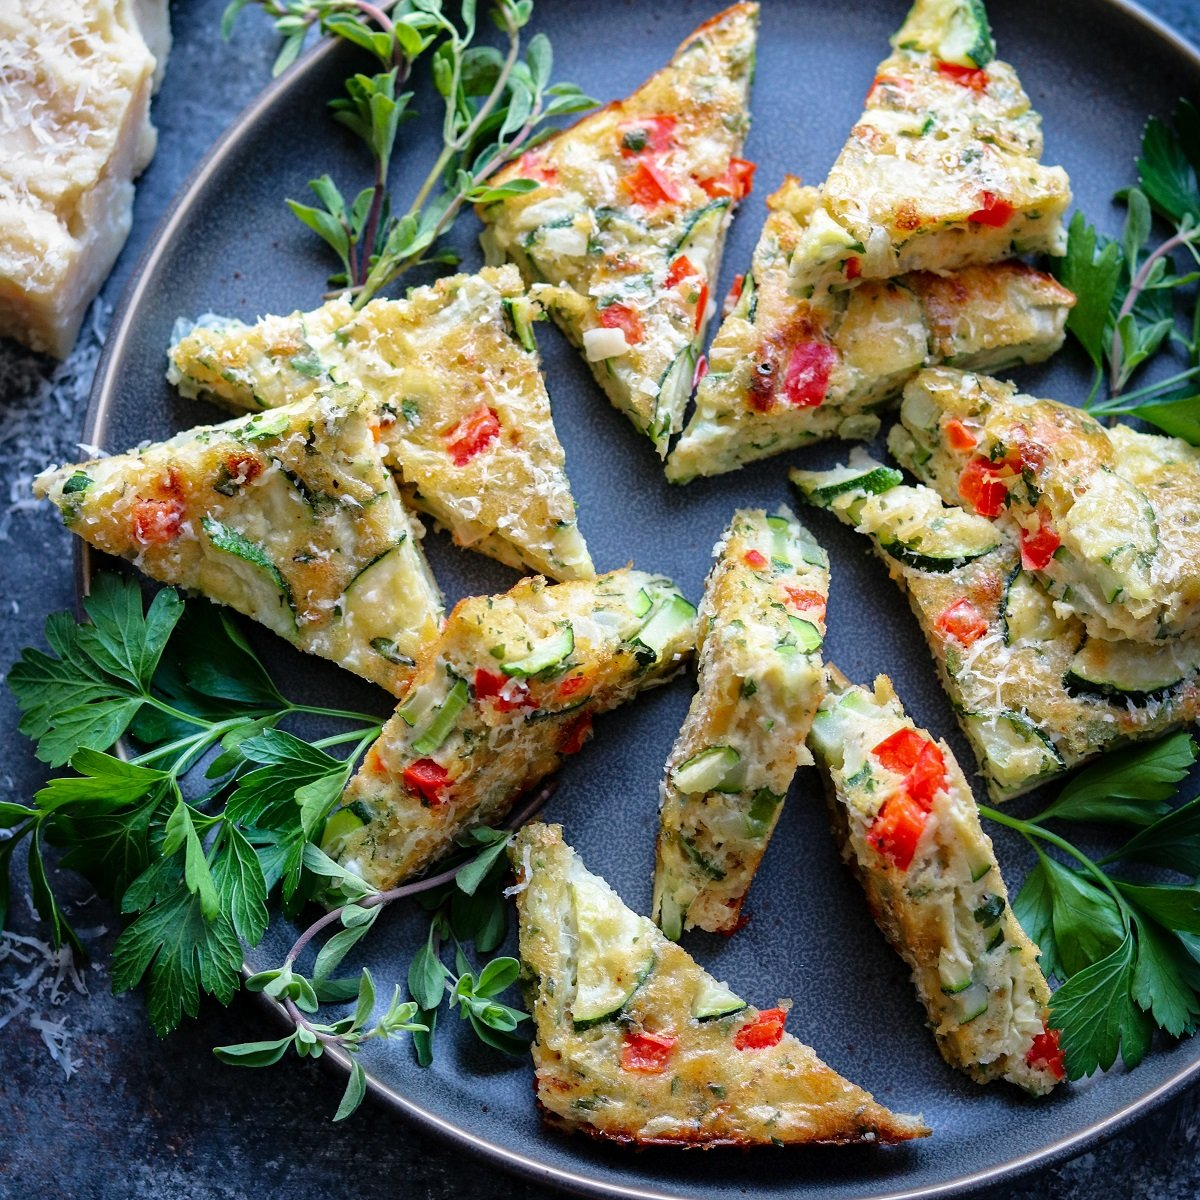 Zucchini bites cut into triangles garnished with fresh herbs and served on a gray plate.